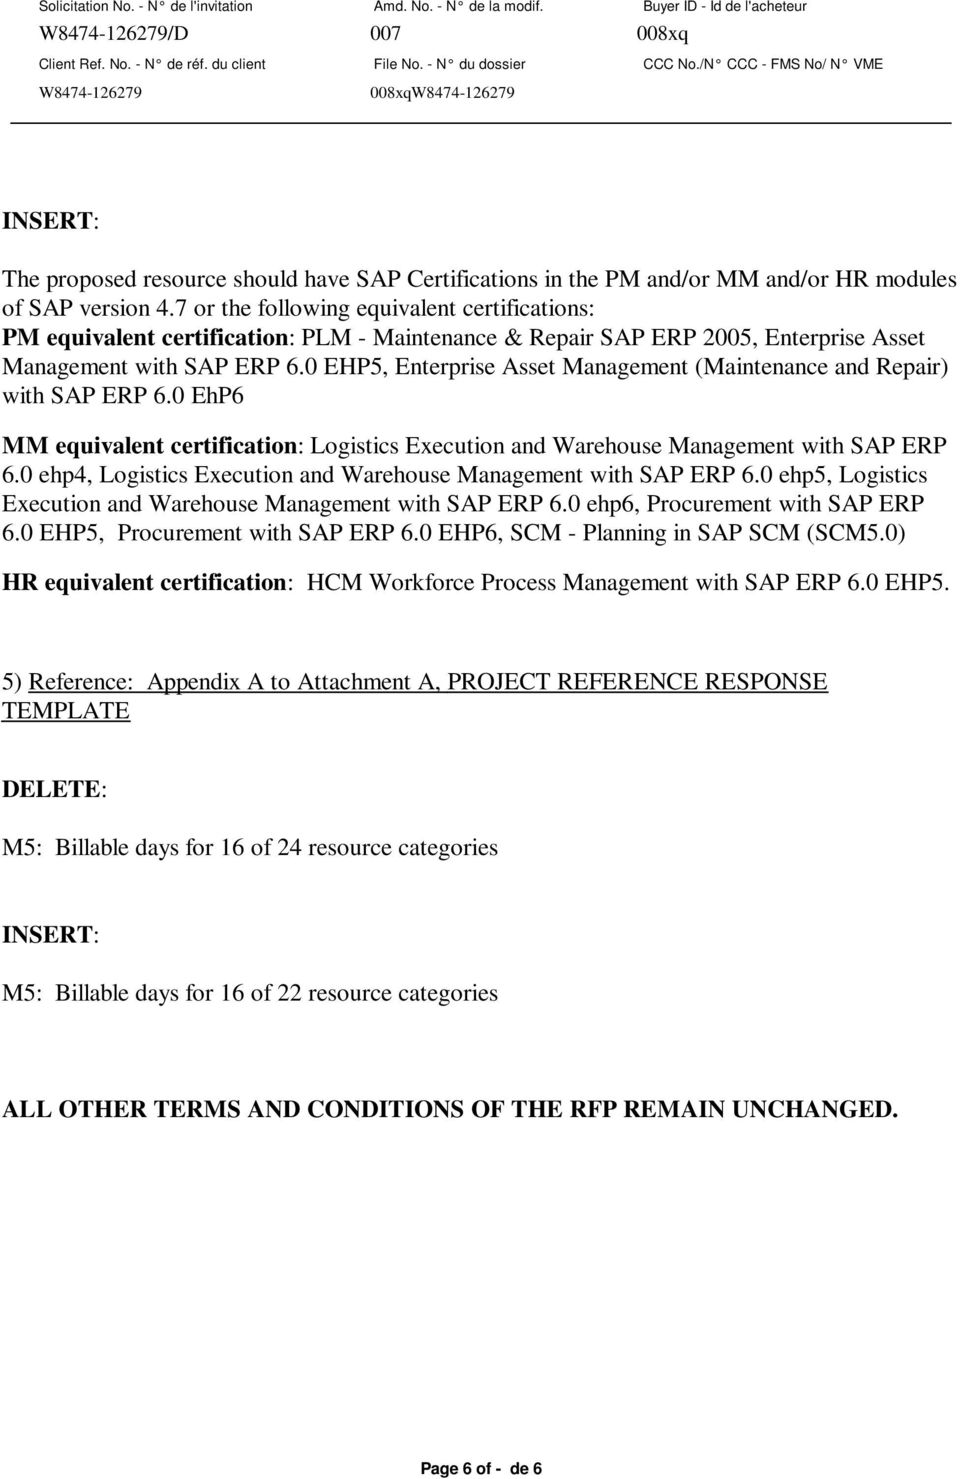 0 EHP5, Enterprise Asset Management (Maintenance and Repair) with SAP ERP 6.0 EhP6 MM equivalent certification: Logistics Execution and Warehouse Management with SAP ERP 6.